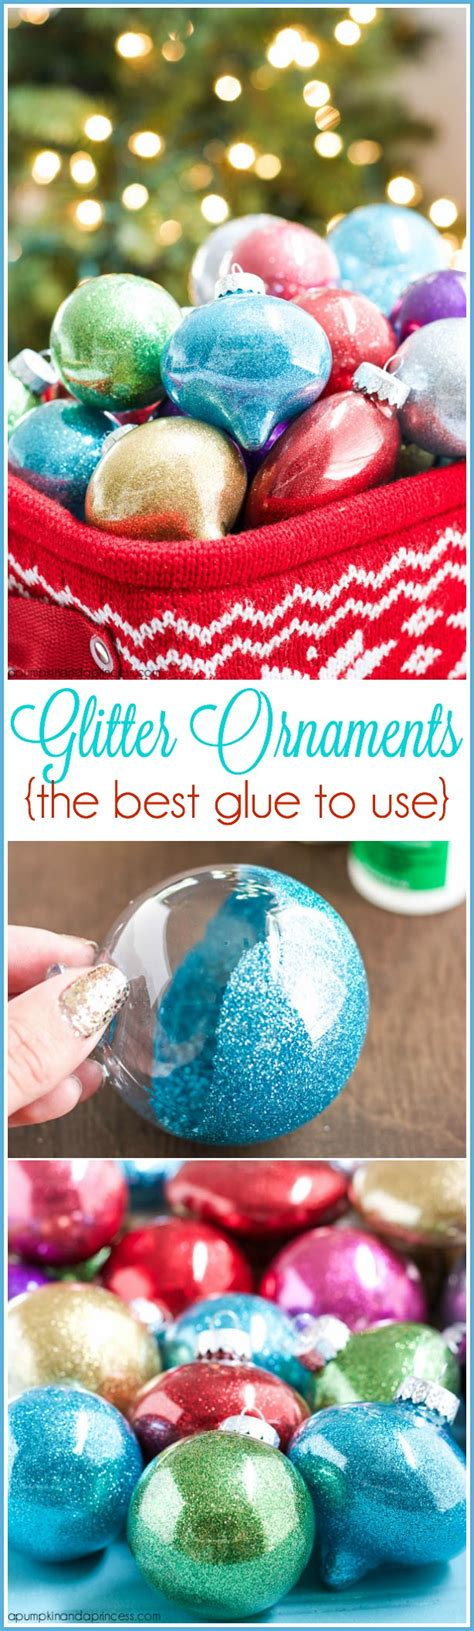 diy ornaments glitter diy glitter ornaments best glue to use a pumpkin and a